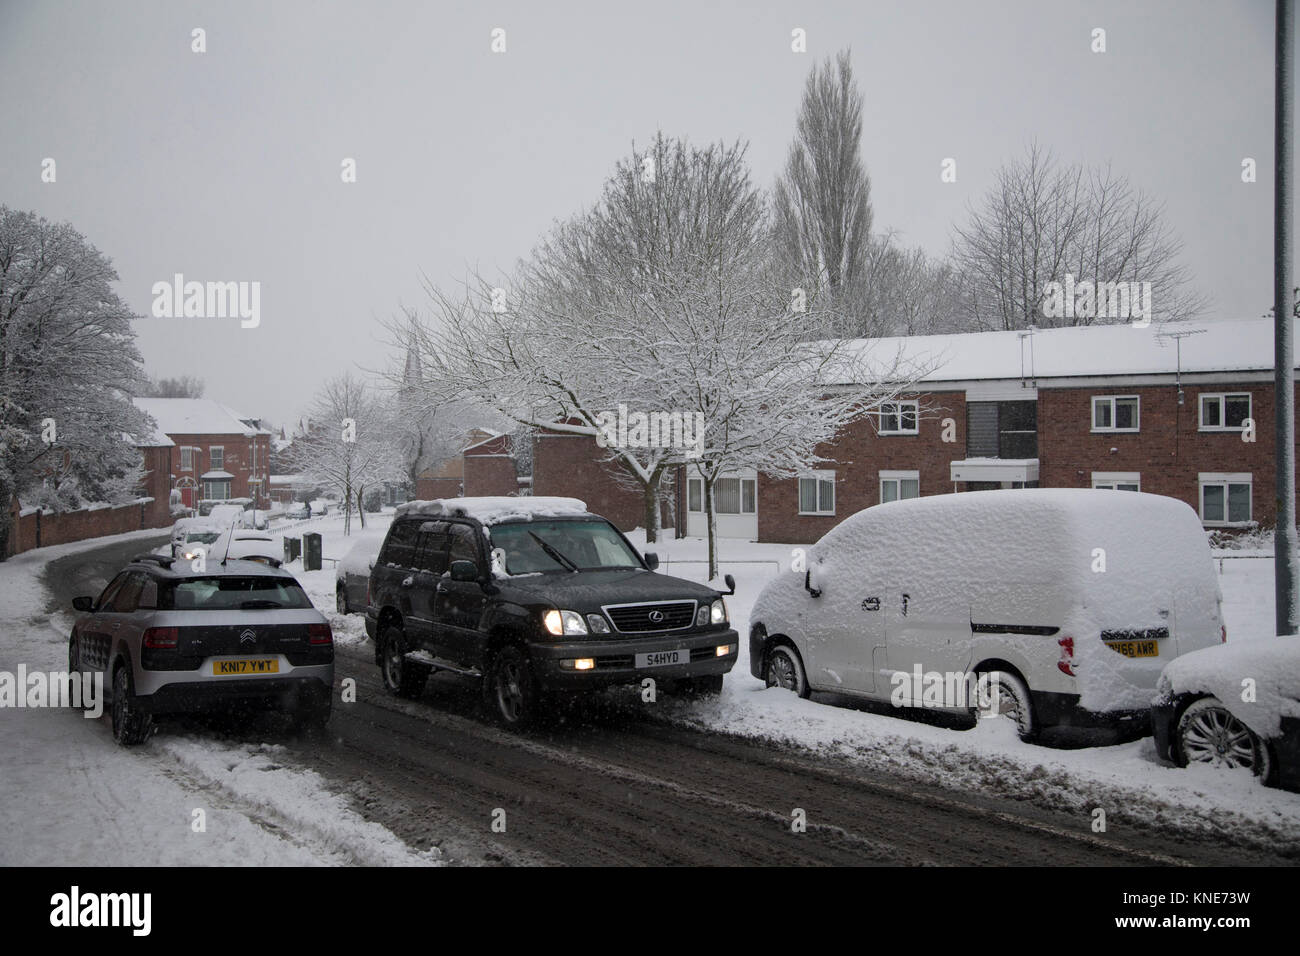 Street scene in Moseley during heavy snow fall on Sunday 10th December 2017 in Birmingham, United Kingdom. Deep - Stock Image